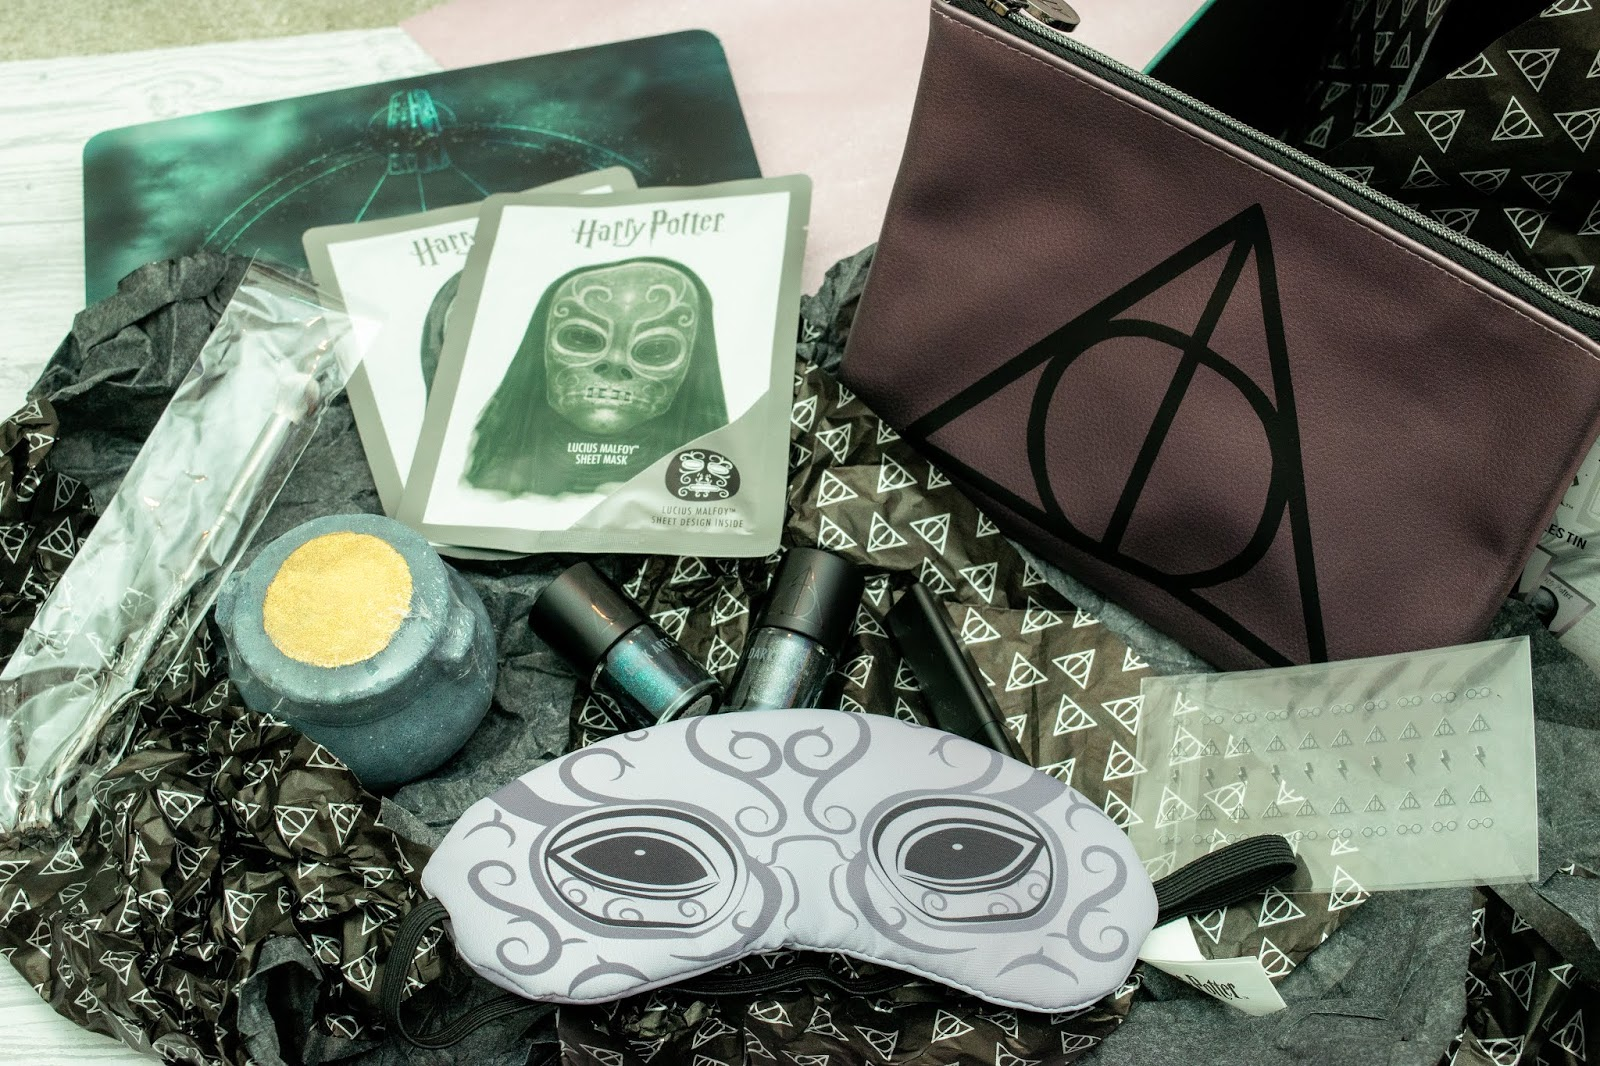 A flat lay of beauty products in black and grey. There are face masks, a pouch, bath bomb, nail polish, eye mask and makeup brush.